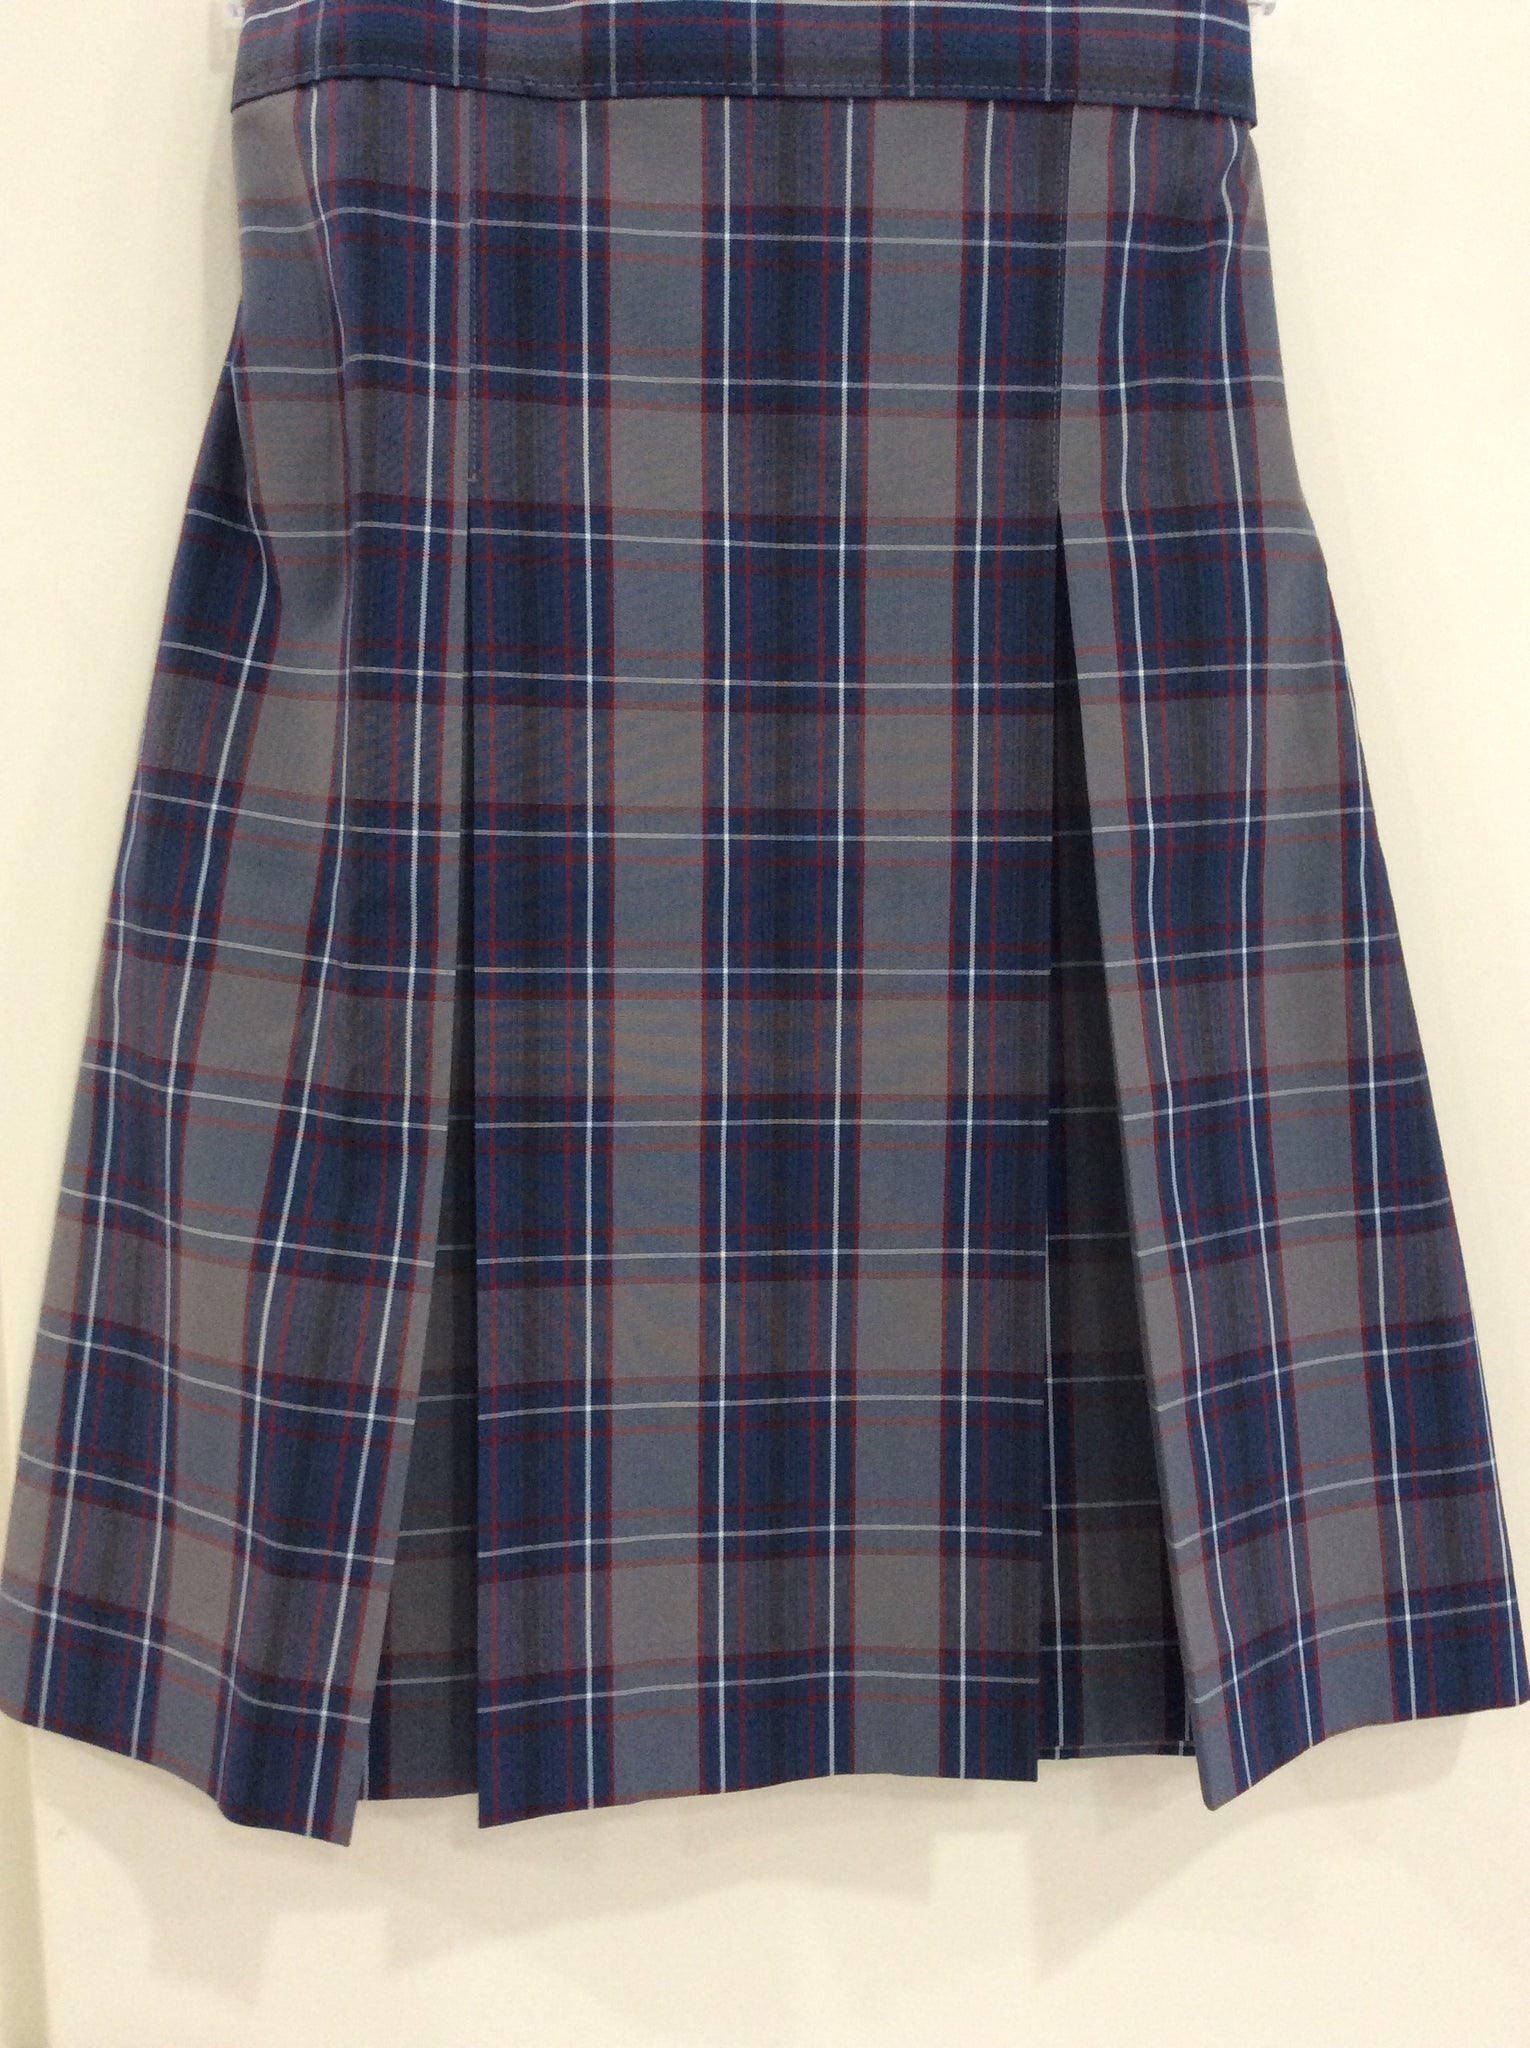 ALA Girl's Plaid Skirt - Half Size| A+